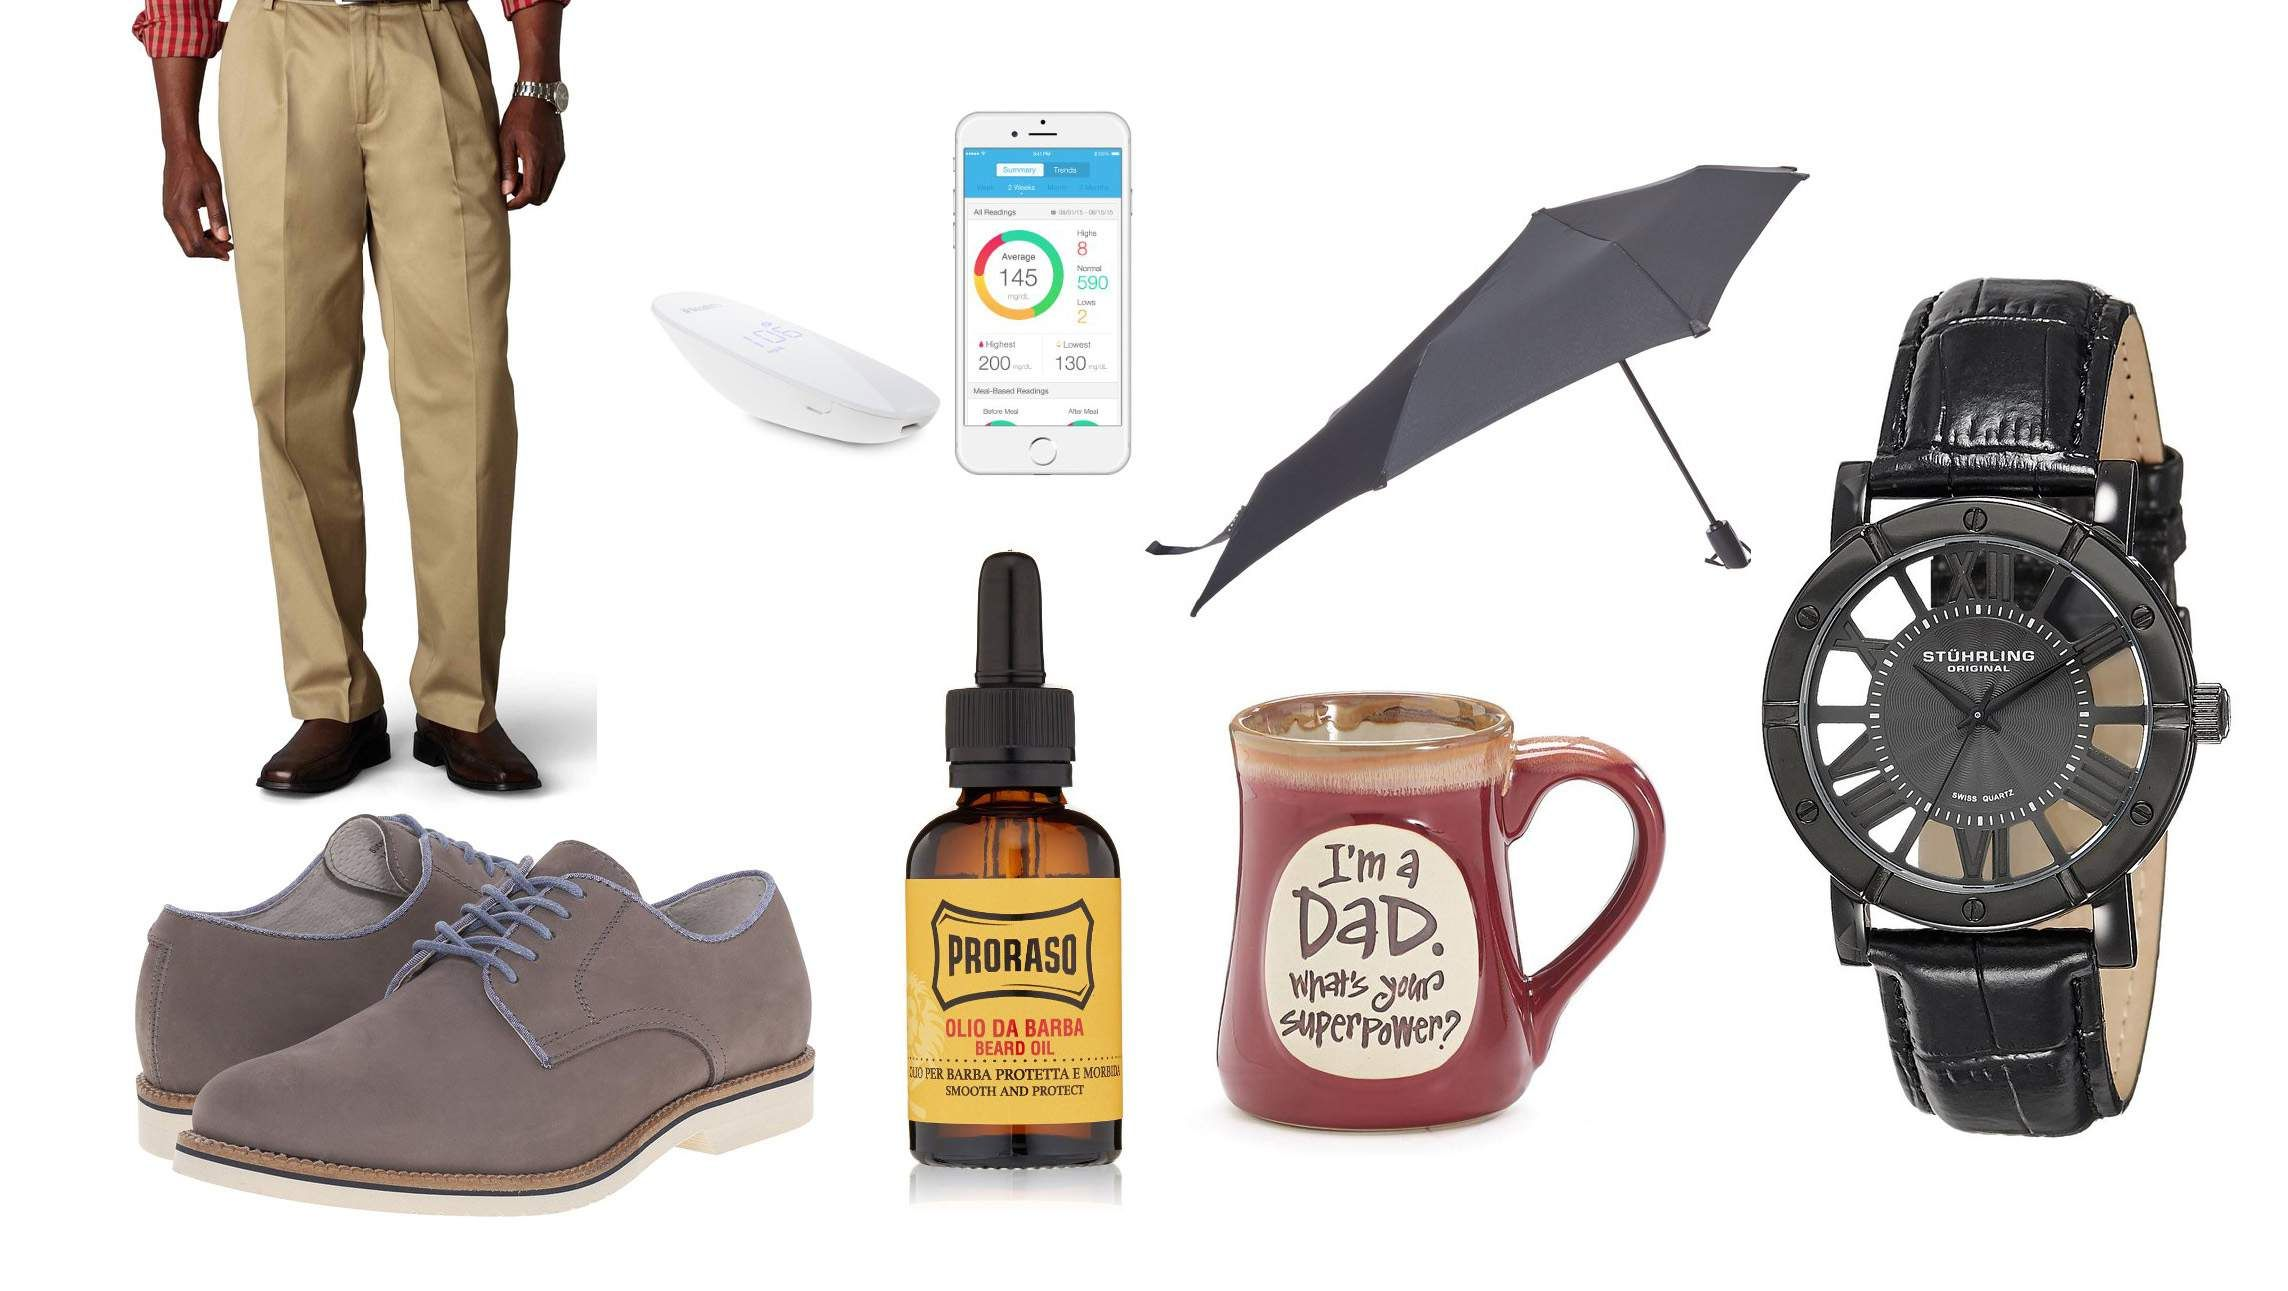 e9e06531c6705 101 Best Gifts for Dad  The Ultimate List (Updated!)